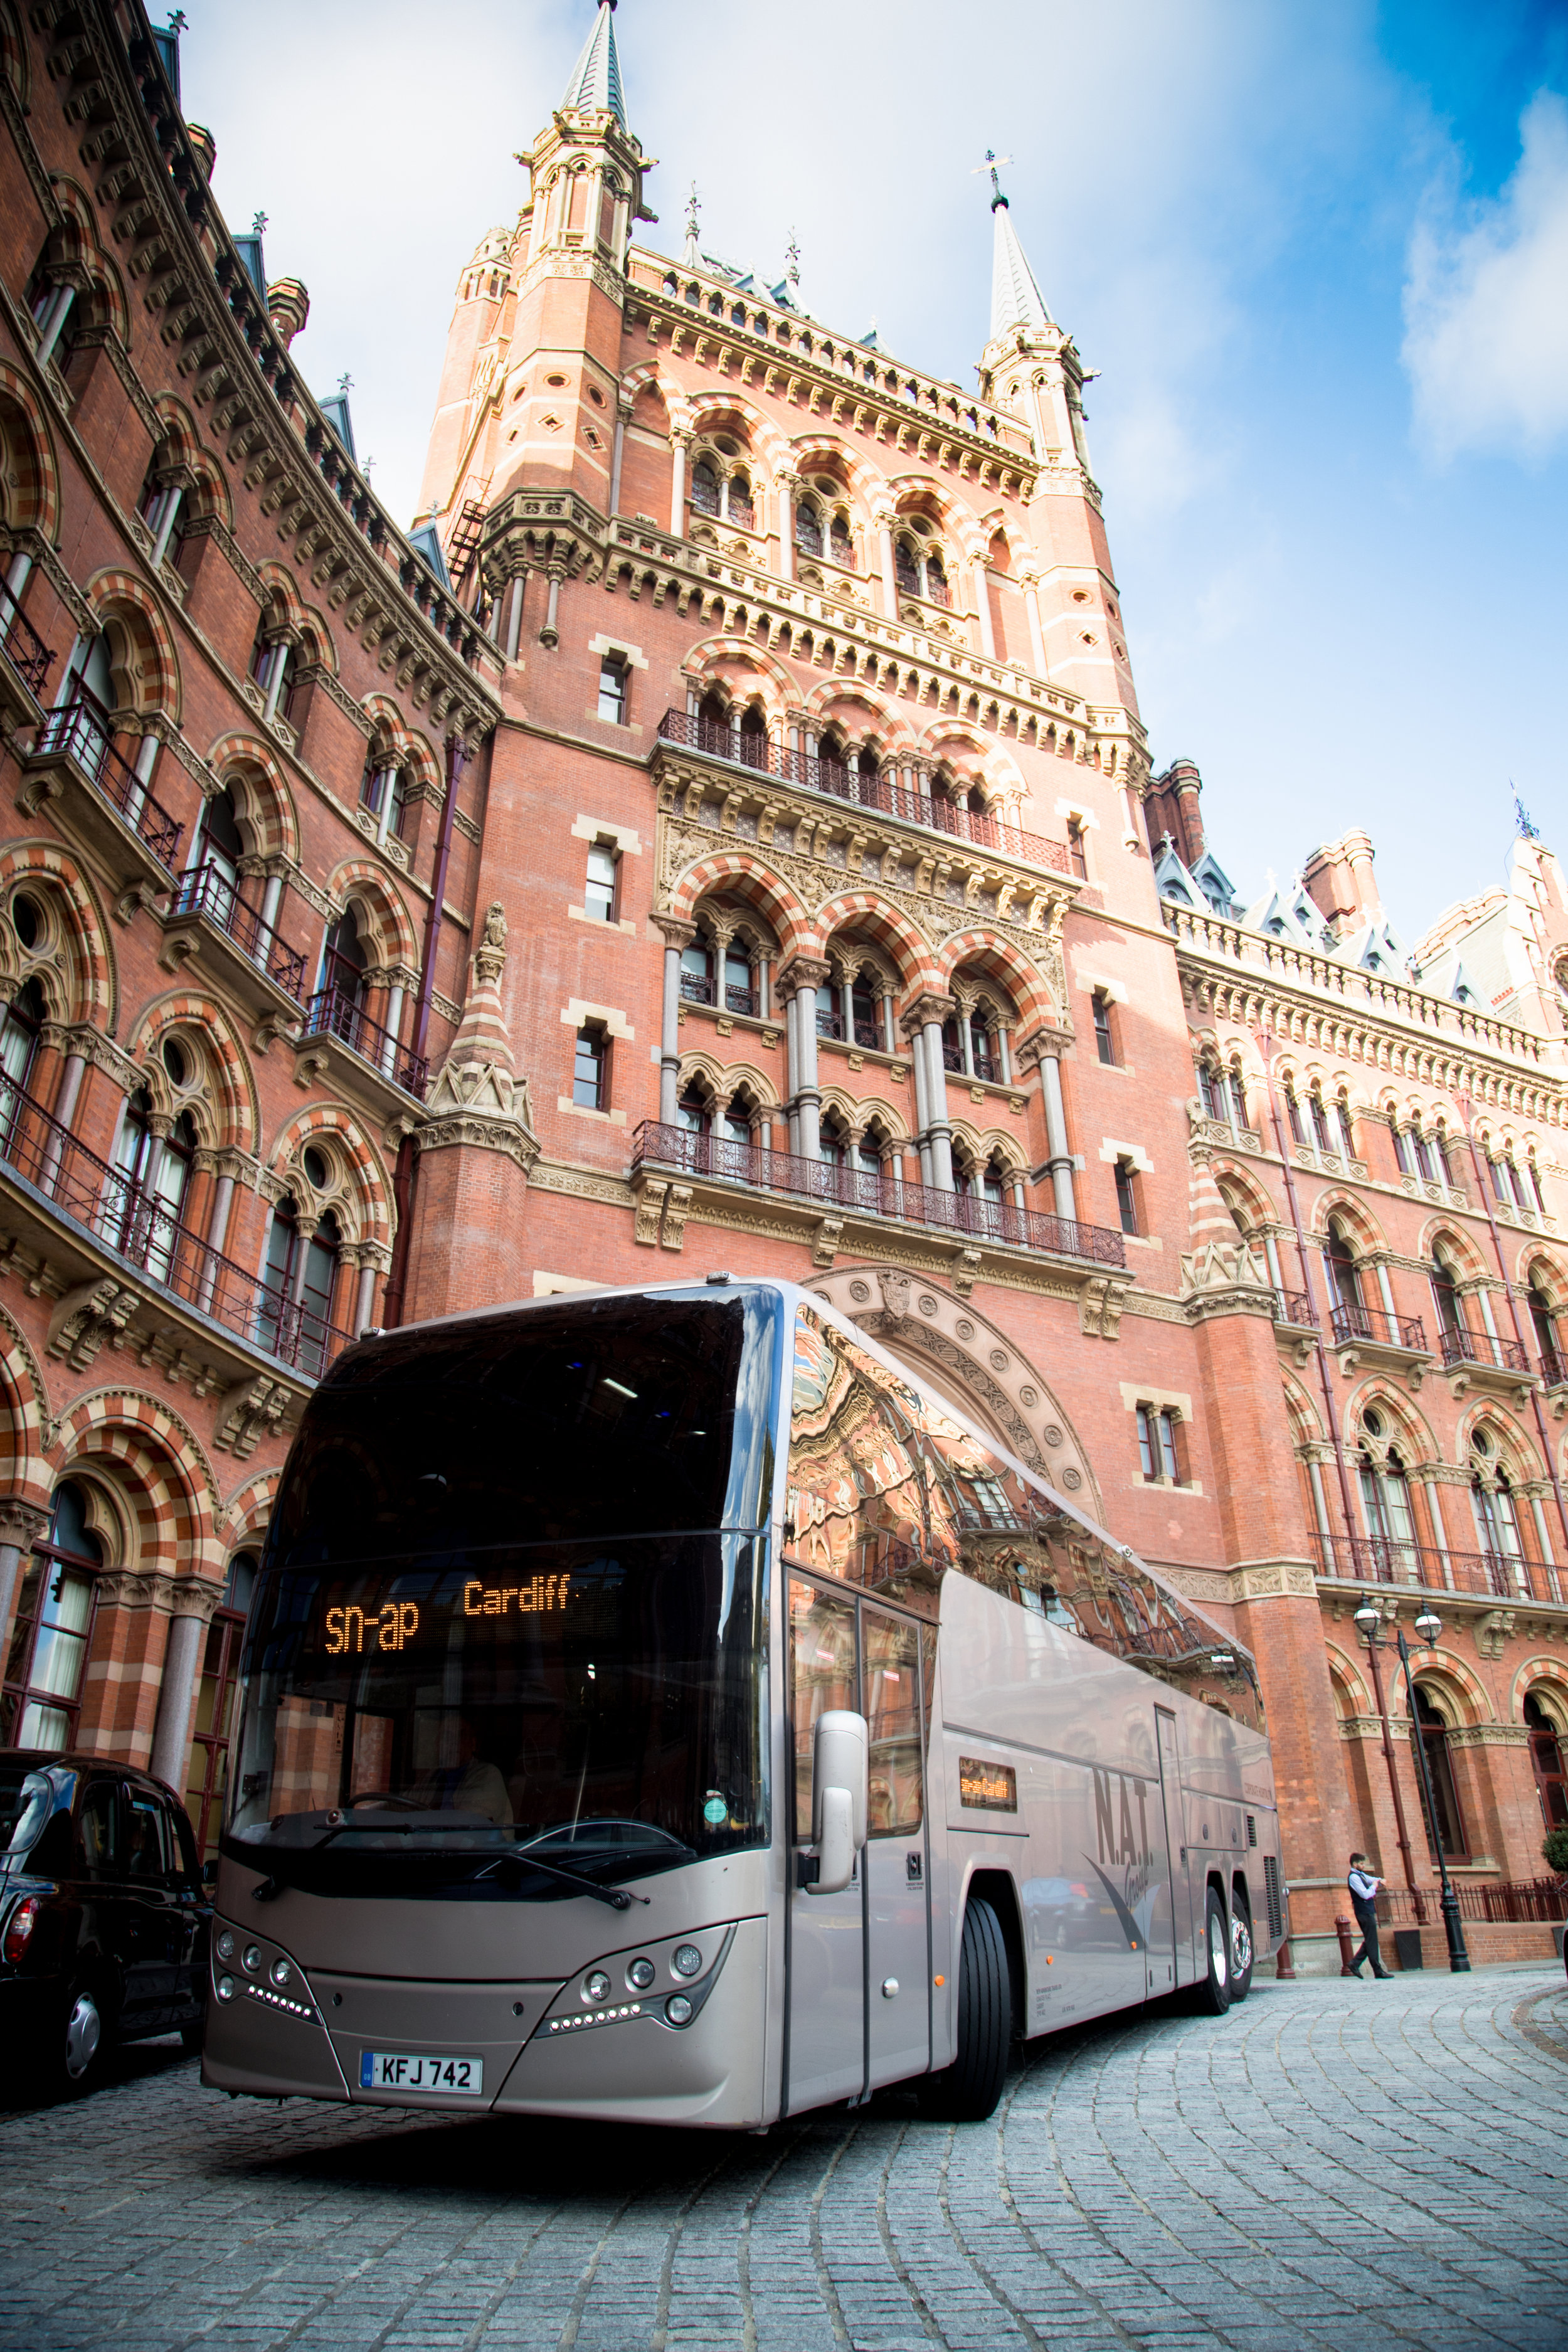 Tell us the trips you want to run - And what coaches you have available to run them?We require from you:- A coach with air conditioning and toilet- Minimum of 48 seats- Meet London emissions standards (Euro5 or Euro6)- Snap Trained Driver and uses the Snap Drivers app- Absolute focus on quality with great drivers and comfortable coaches- An OCRS score that is not redSnap operates a profit share model that allows an operator to keep 100% of ticket revenue until the point at which a coach becomes profitable.